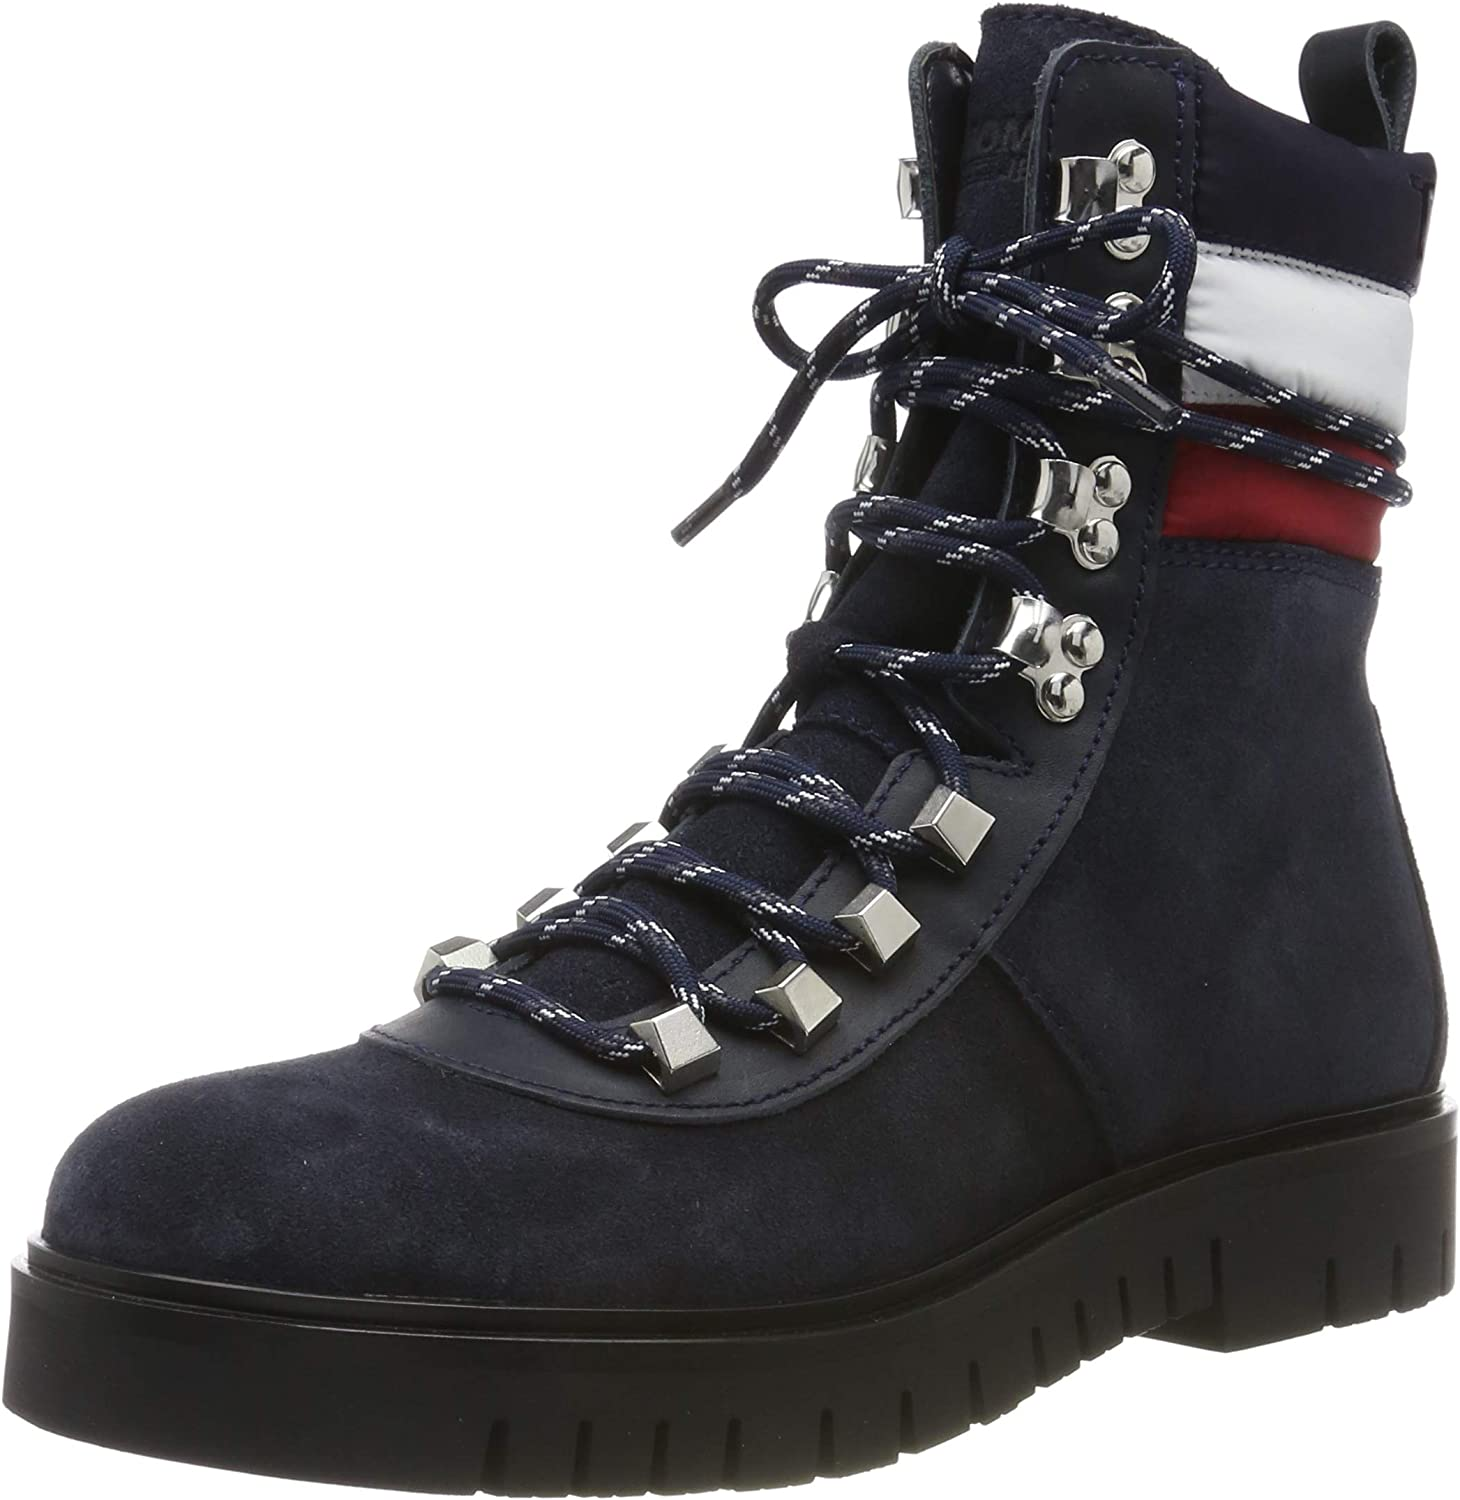 Boot Ankle Boots (Padded Nylon Lace